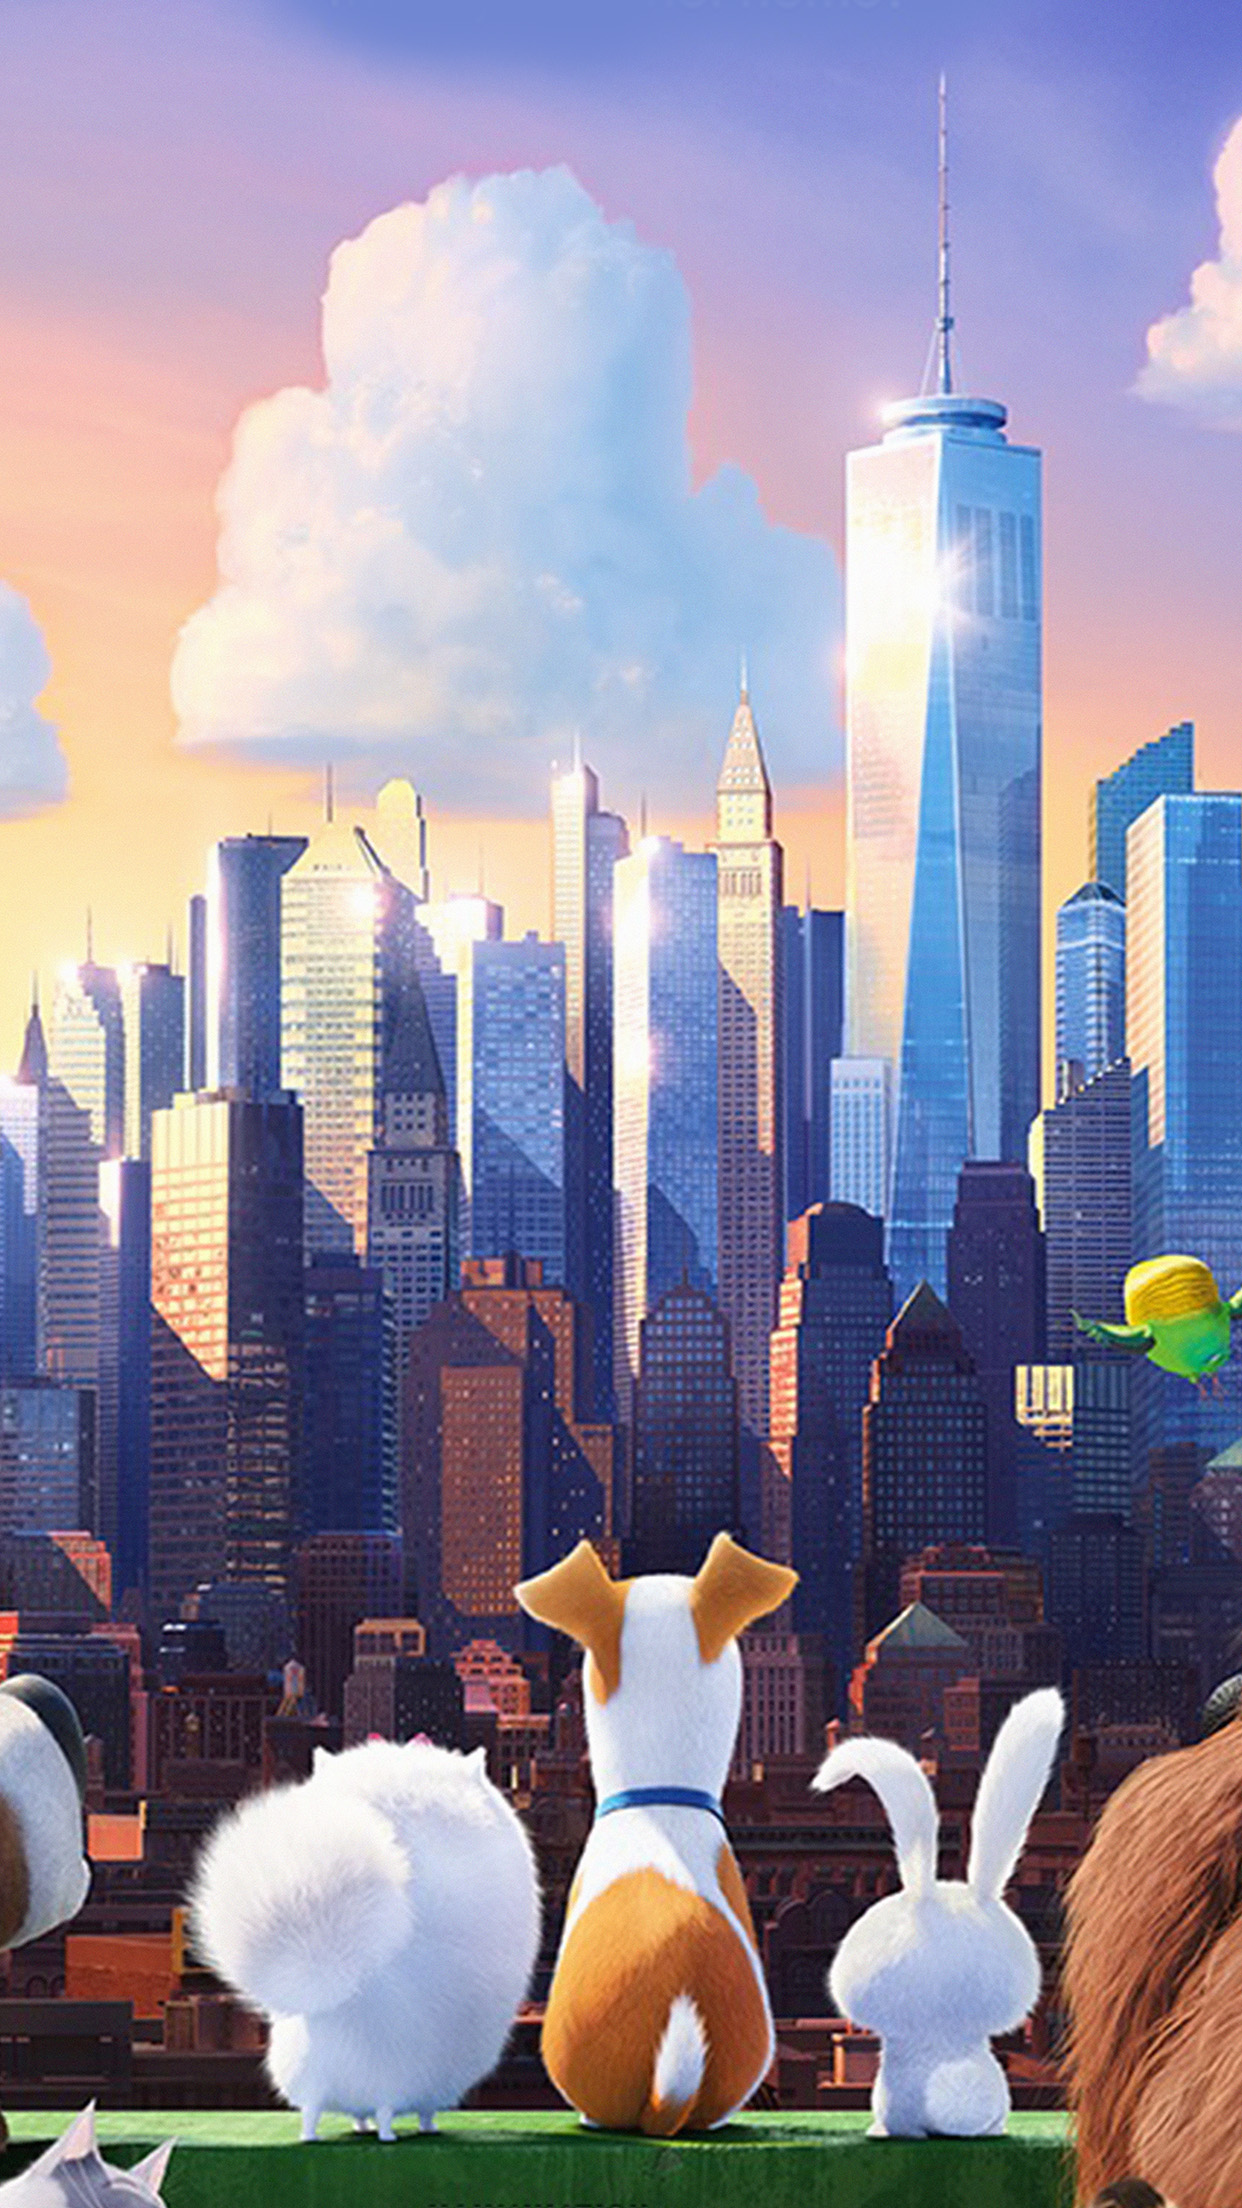 Animation Wallpaper Android As60 Secret Life Of Pets Animation Art Illustration Wallpaper